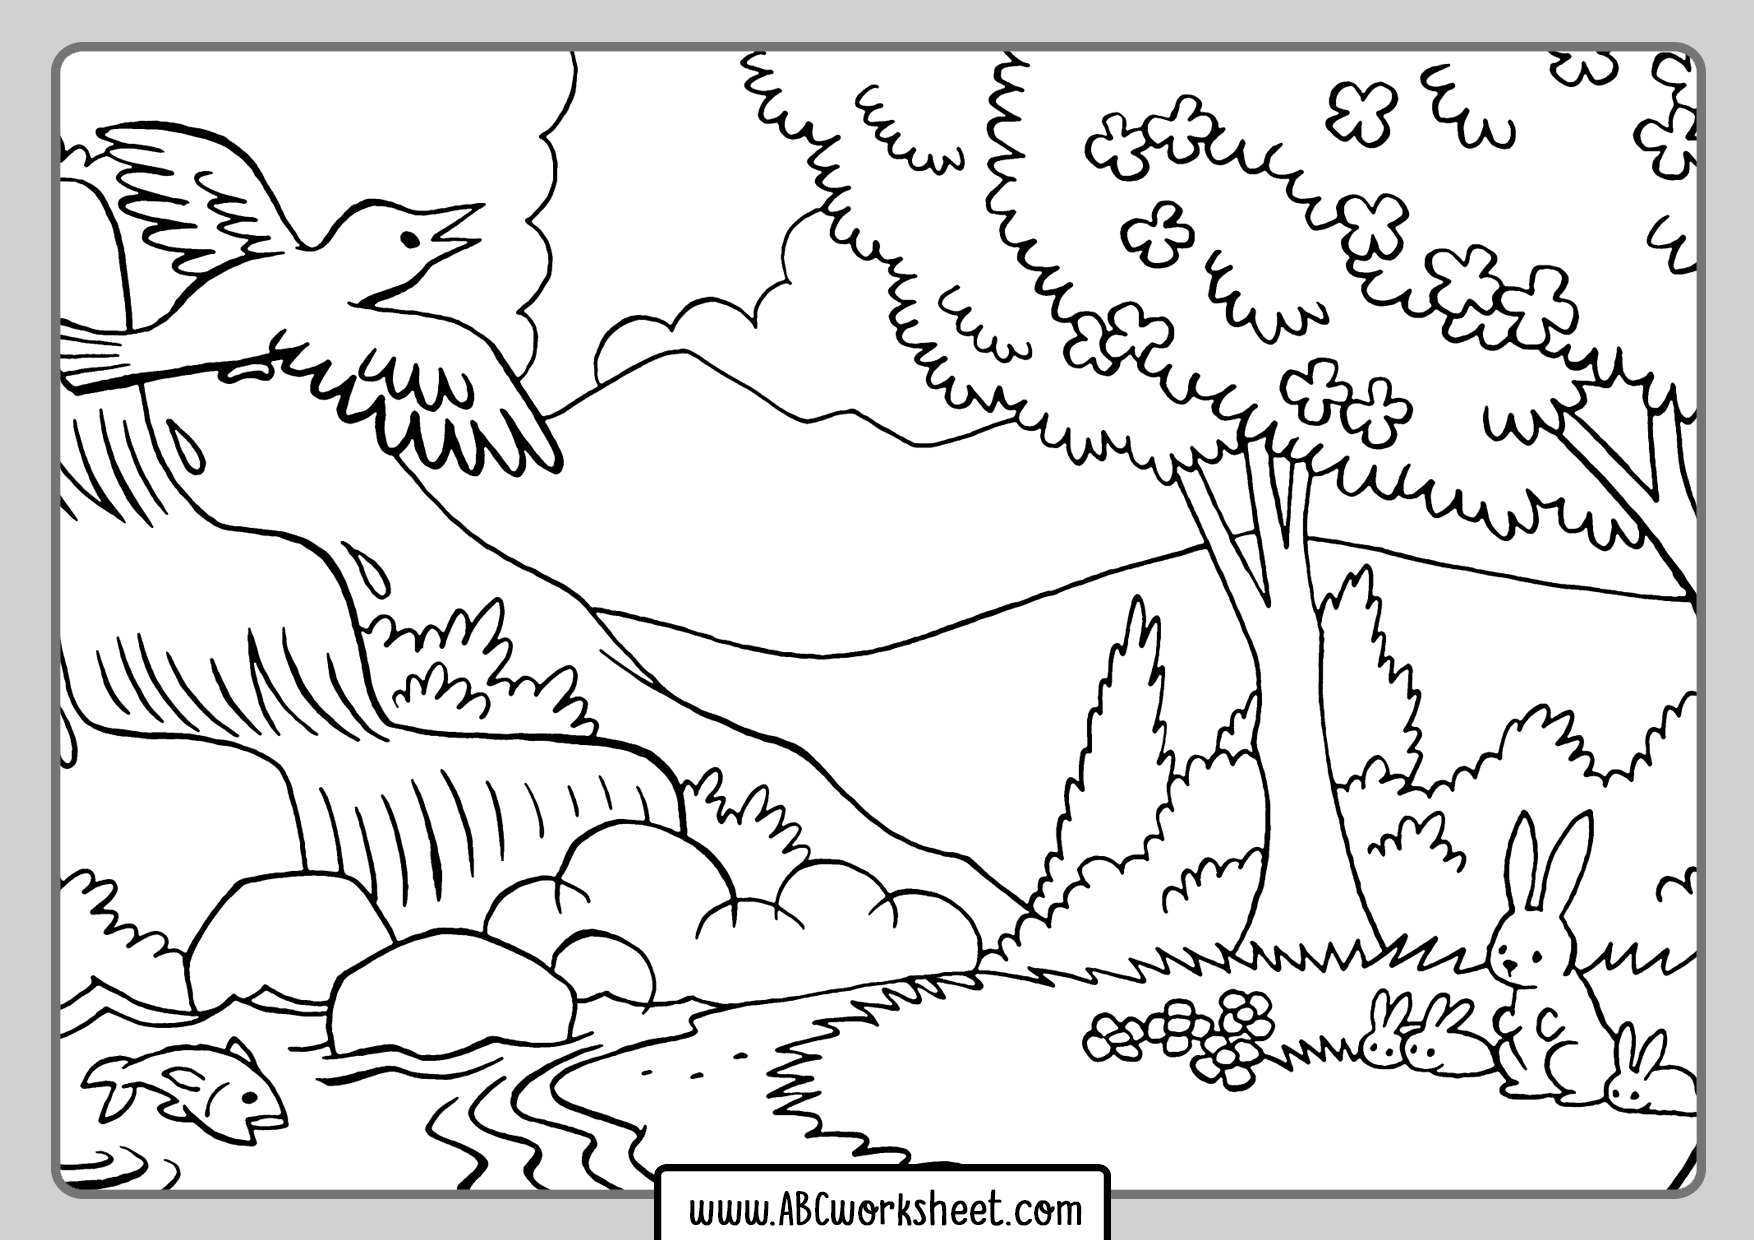 The Forest Landscape Coloring Page